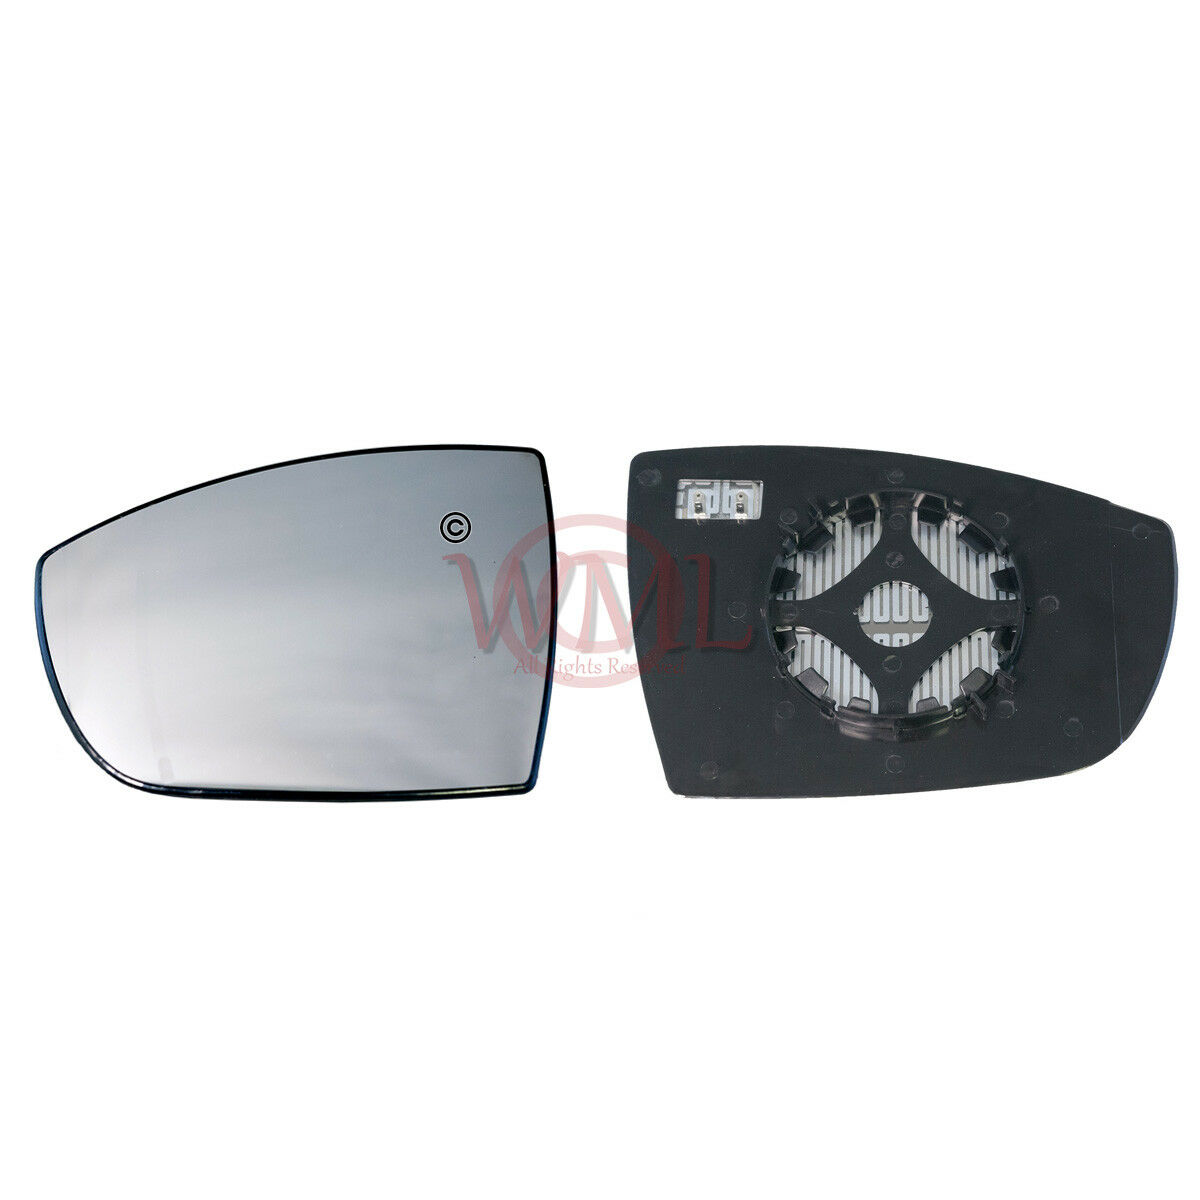 FORD FIESTA 2009-/>2017 DOOR MIRROR GLASS SILVER CONVEX HEATED /& BASE,RIGHT SIDE